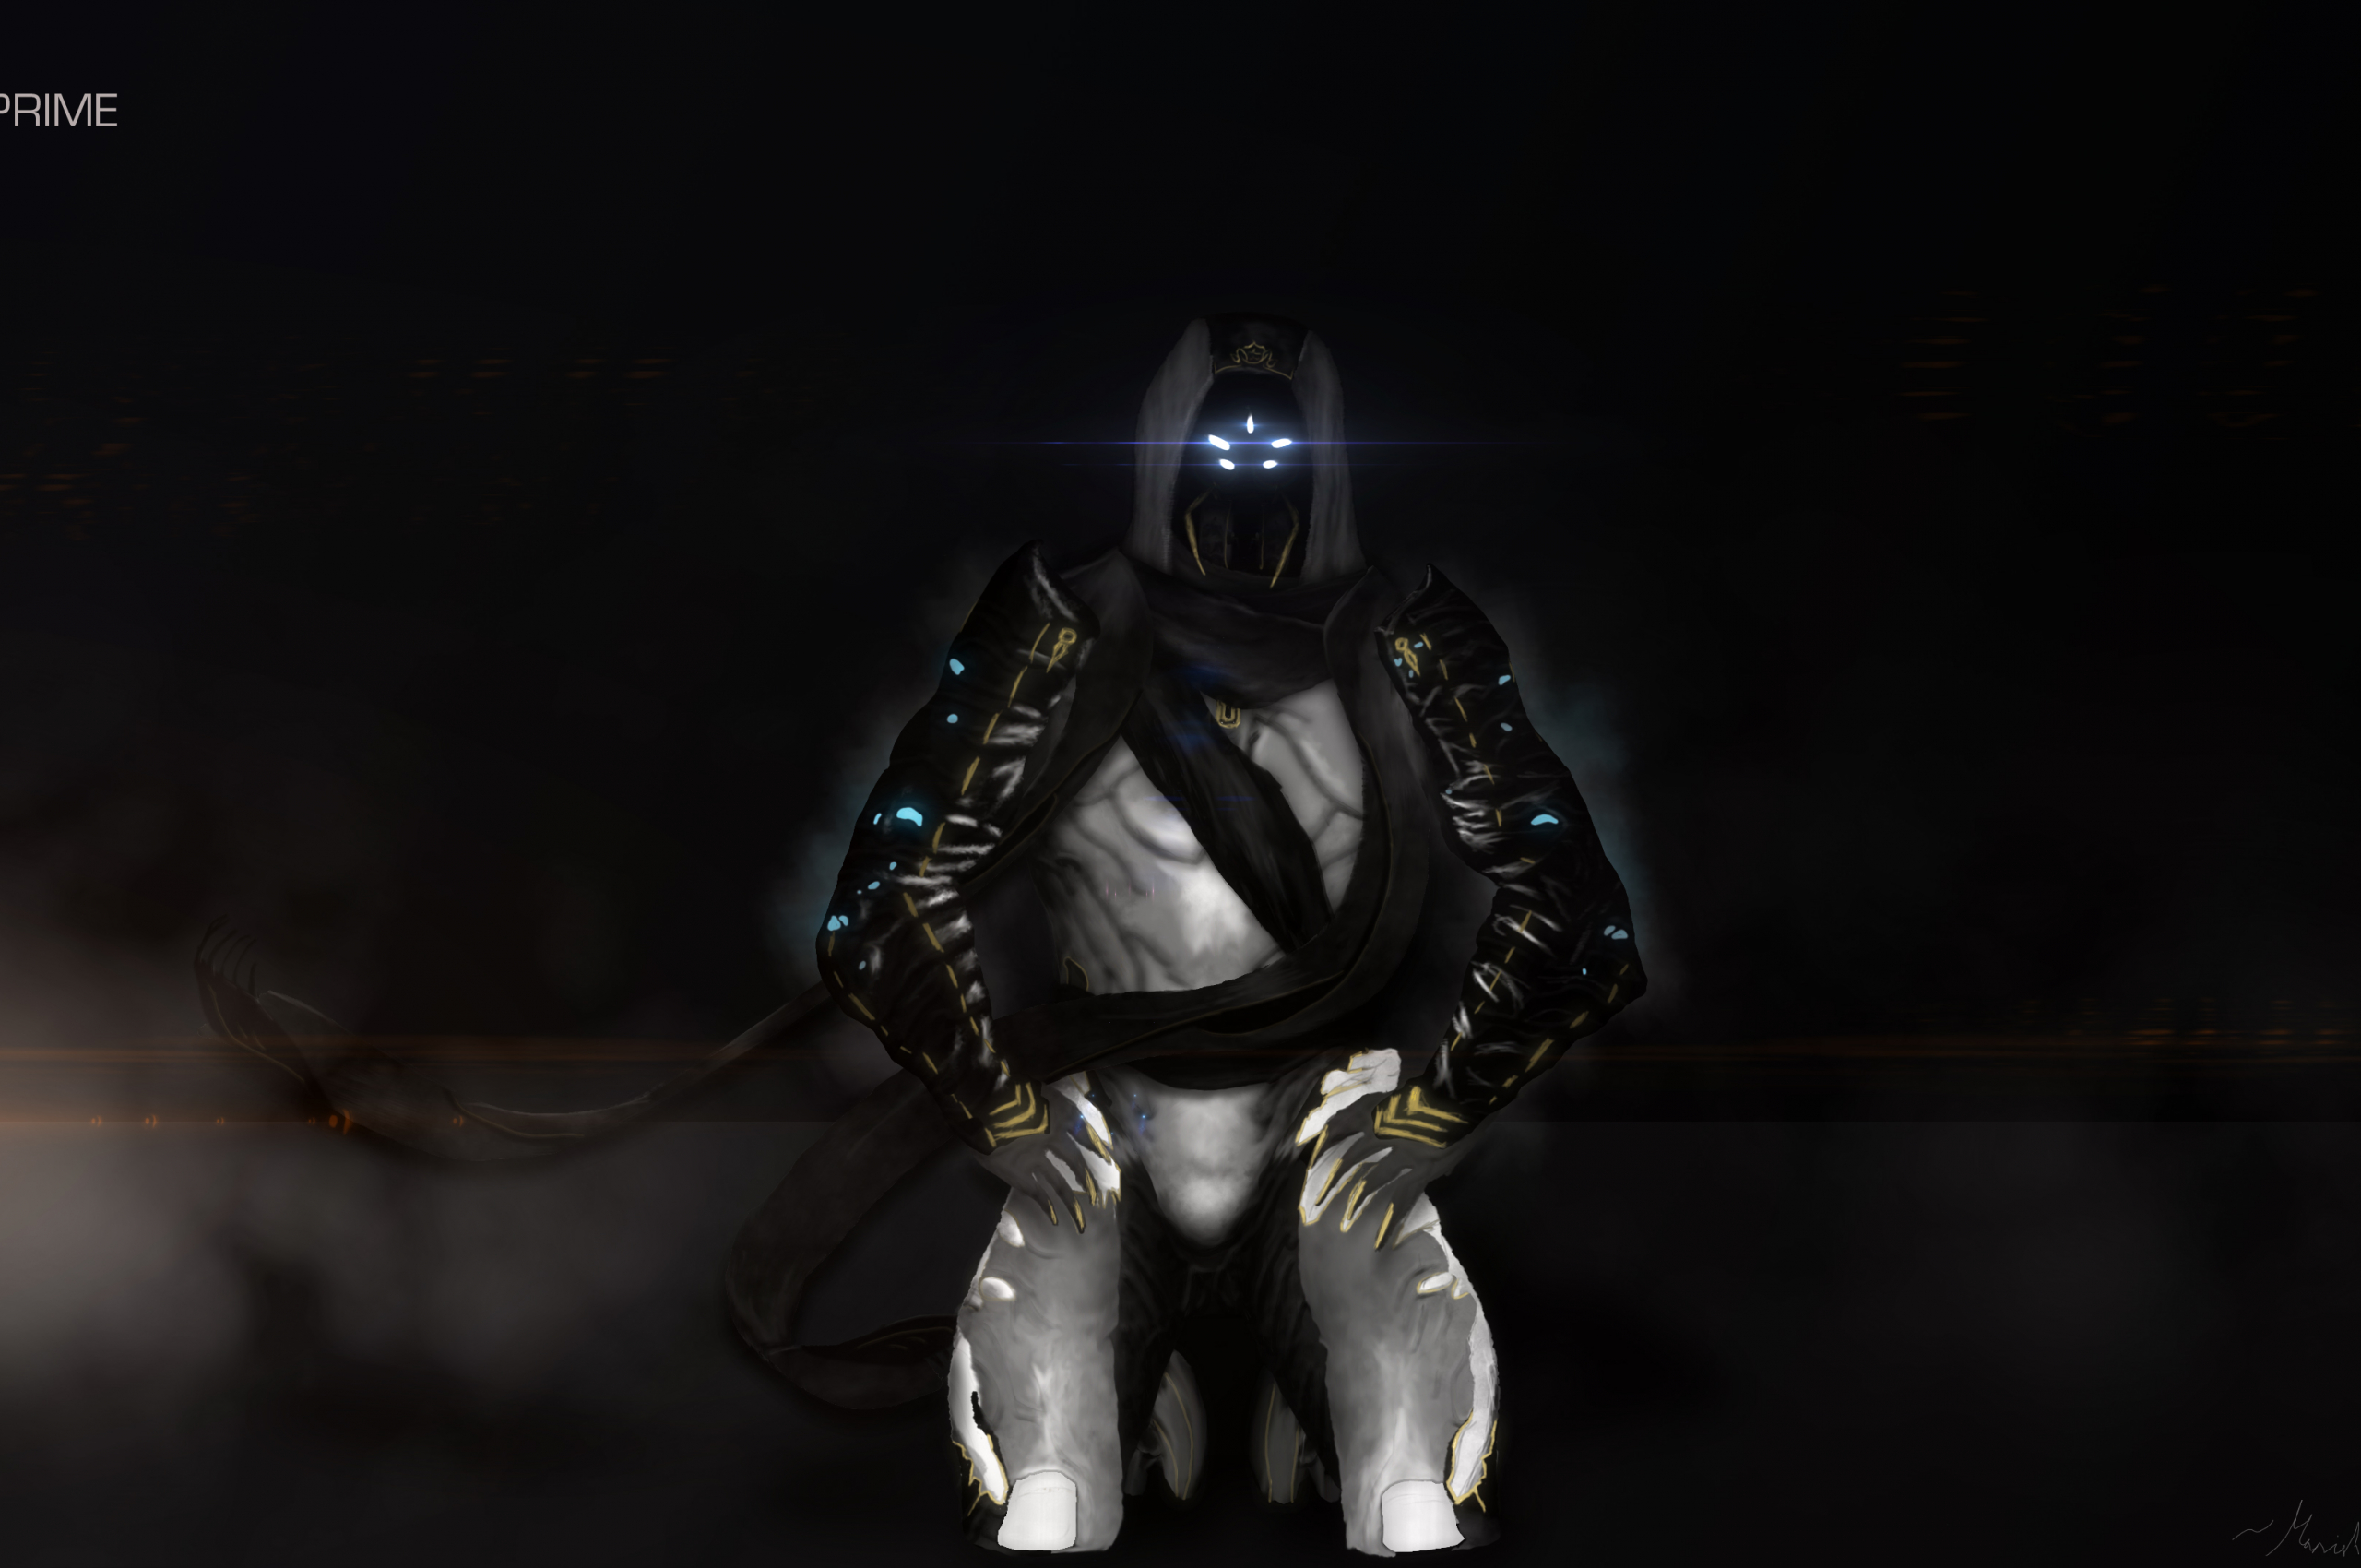 Free download Ash Prime ArtConcept [Updated 120115] Fan Art